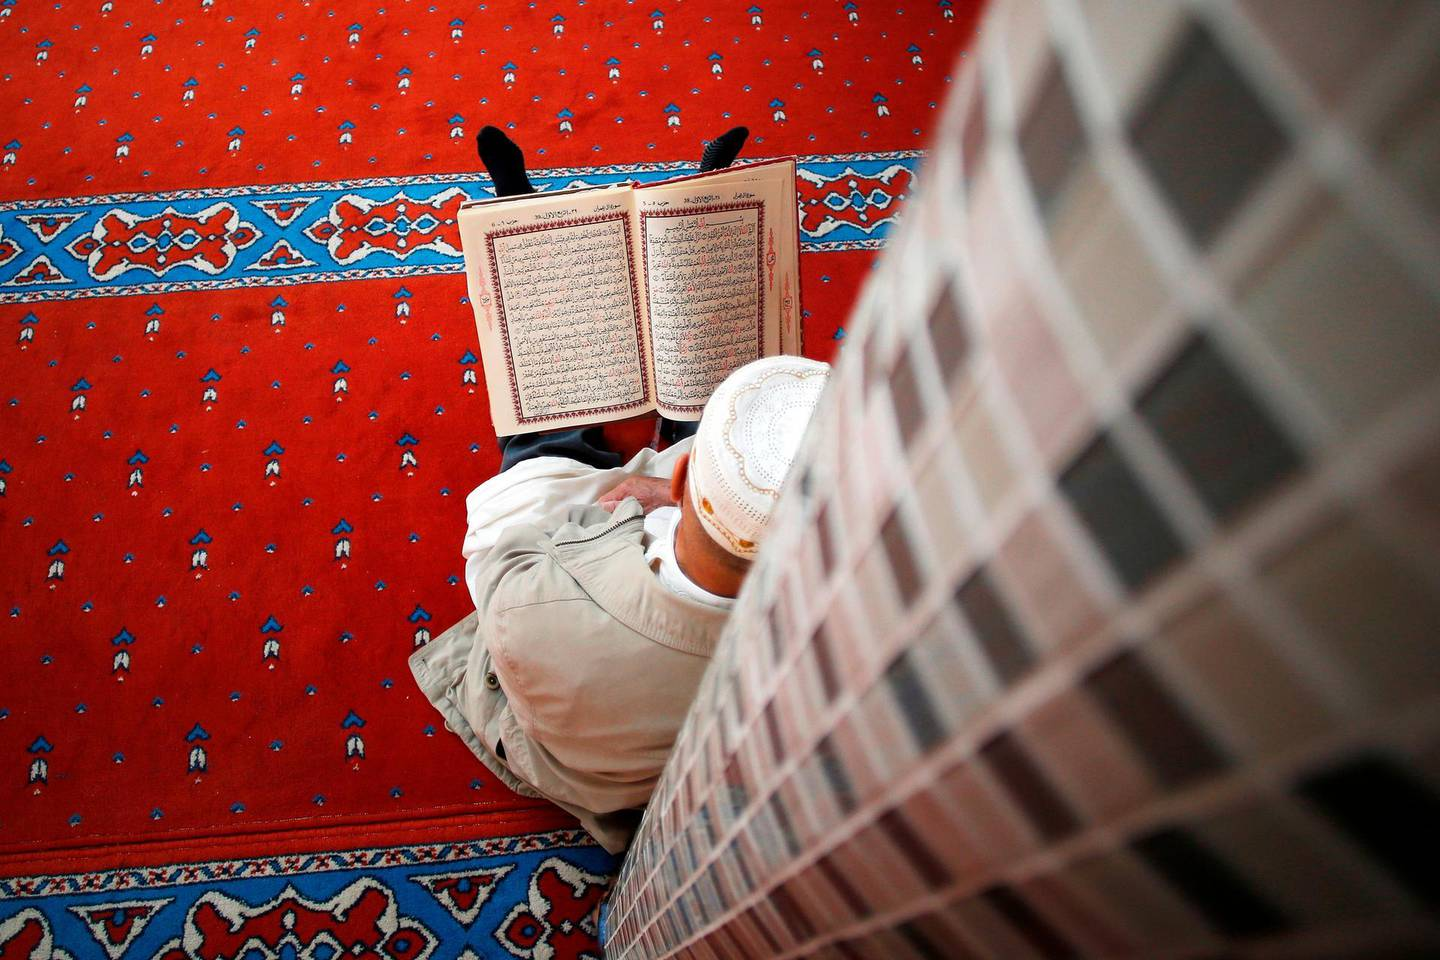 A Muslim prays during the holy month of Ramadan, on May 18, 2018 at the Mosquee Ennour, one of the most important mosquee in the city of Le Havre, northwestern France.  Islam's holy month of Ramadan is calculated on the sighting of the new moon and sees Muslims all over the world fasting from dawn to dusk. / AFP / CHARLY TRIBALLEAU